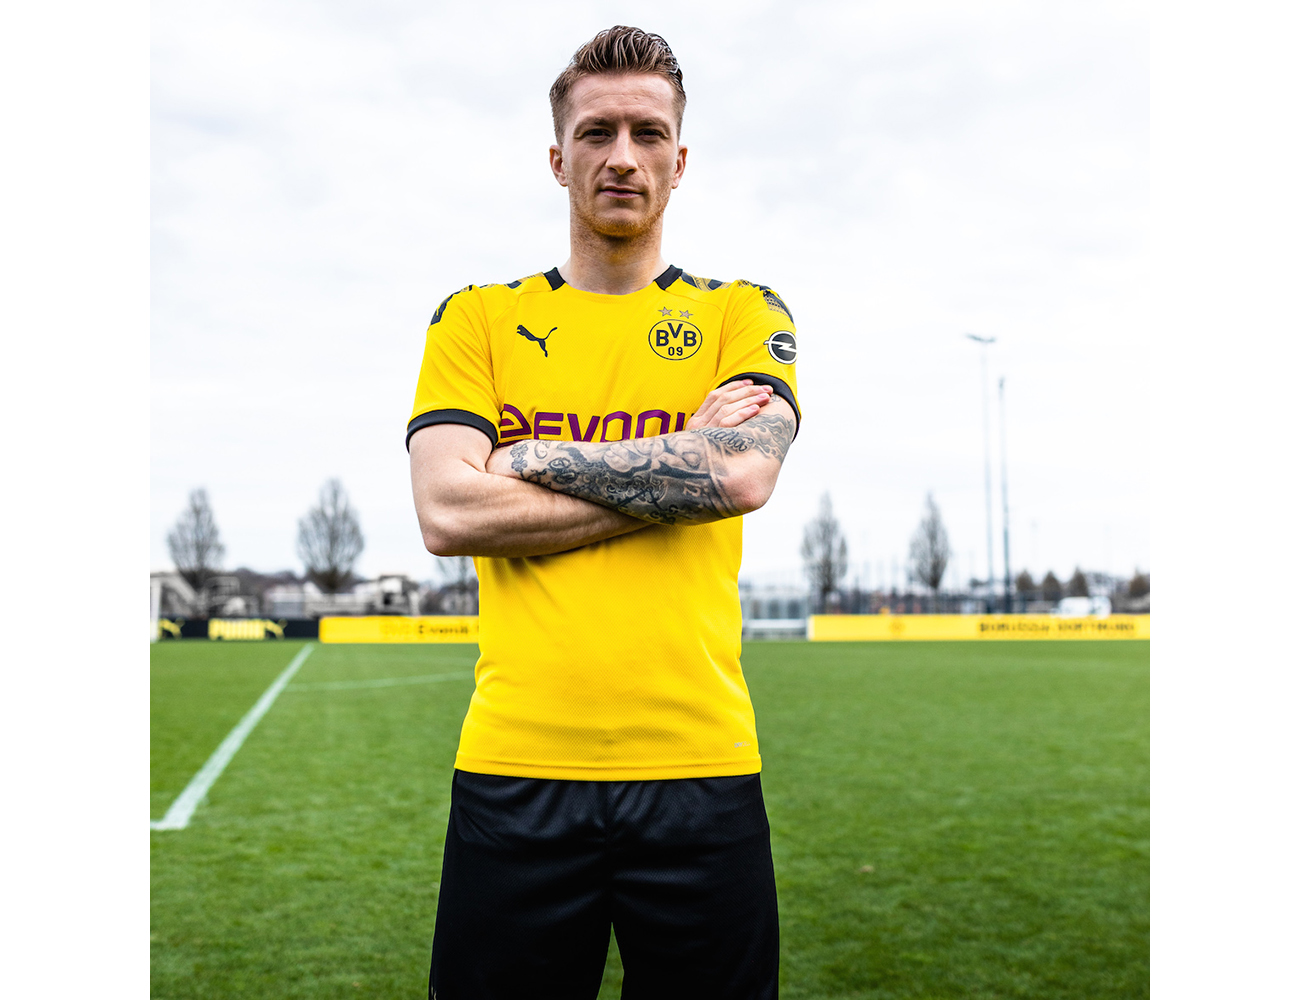 PUMA BVB 201920 Home Kit